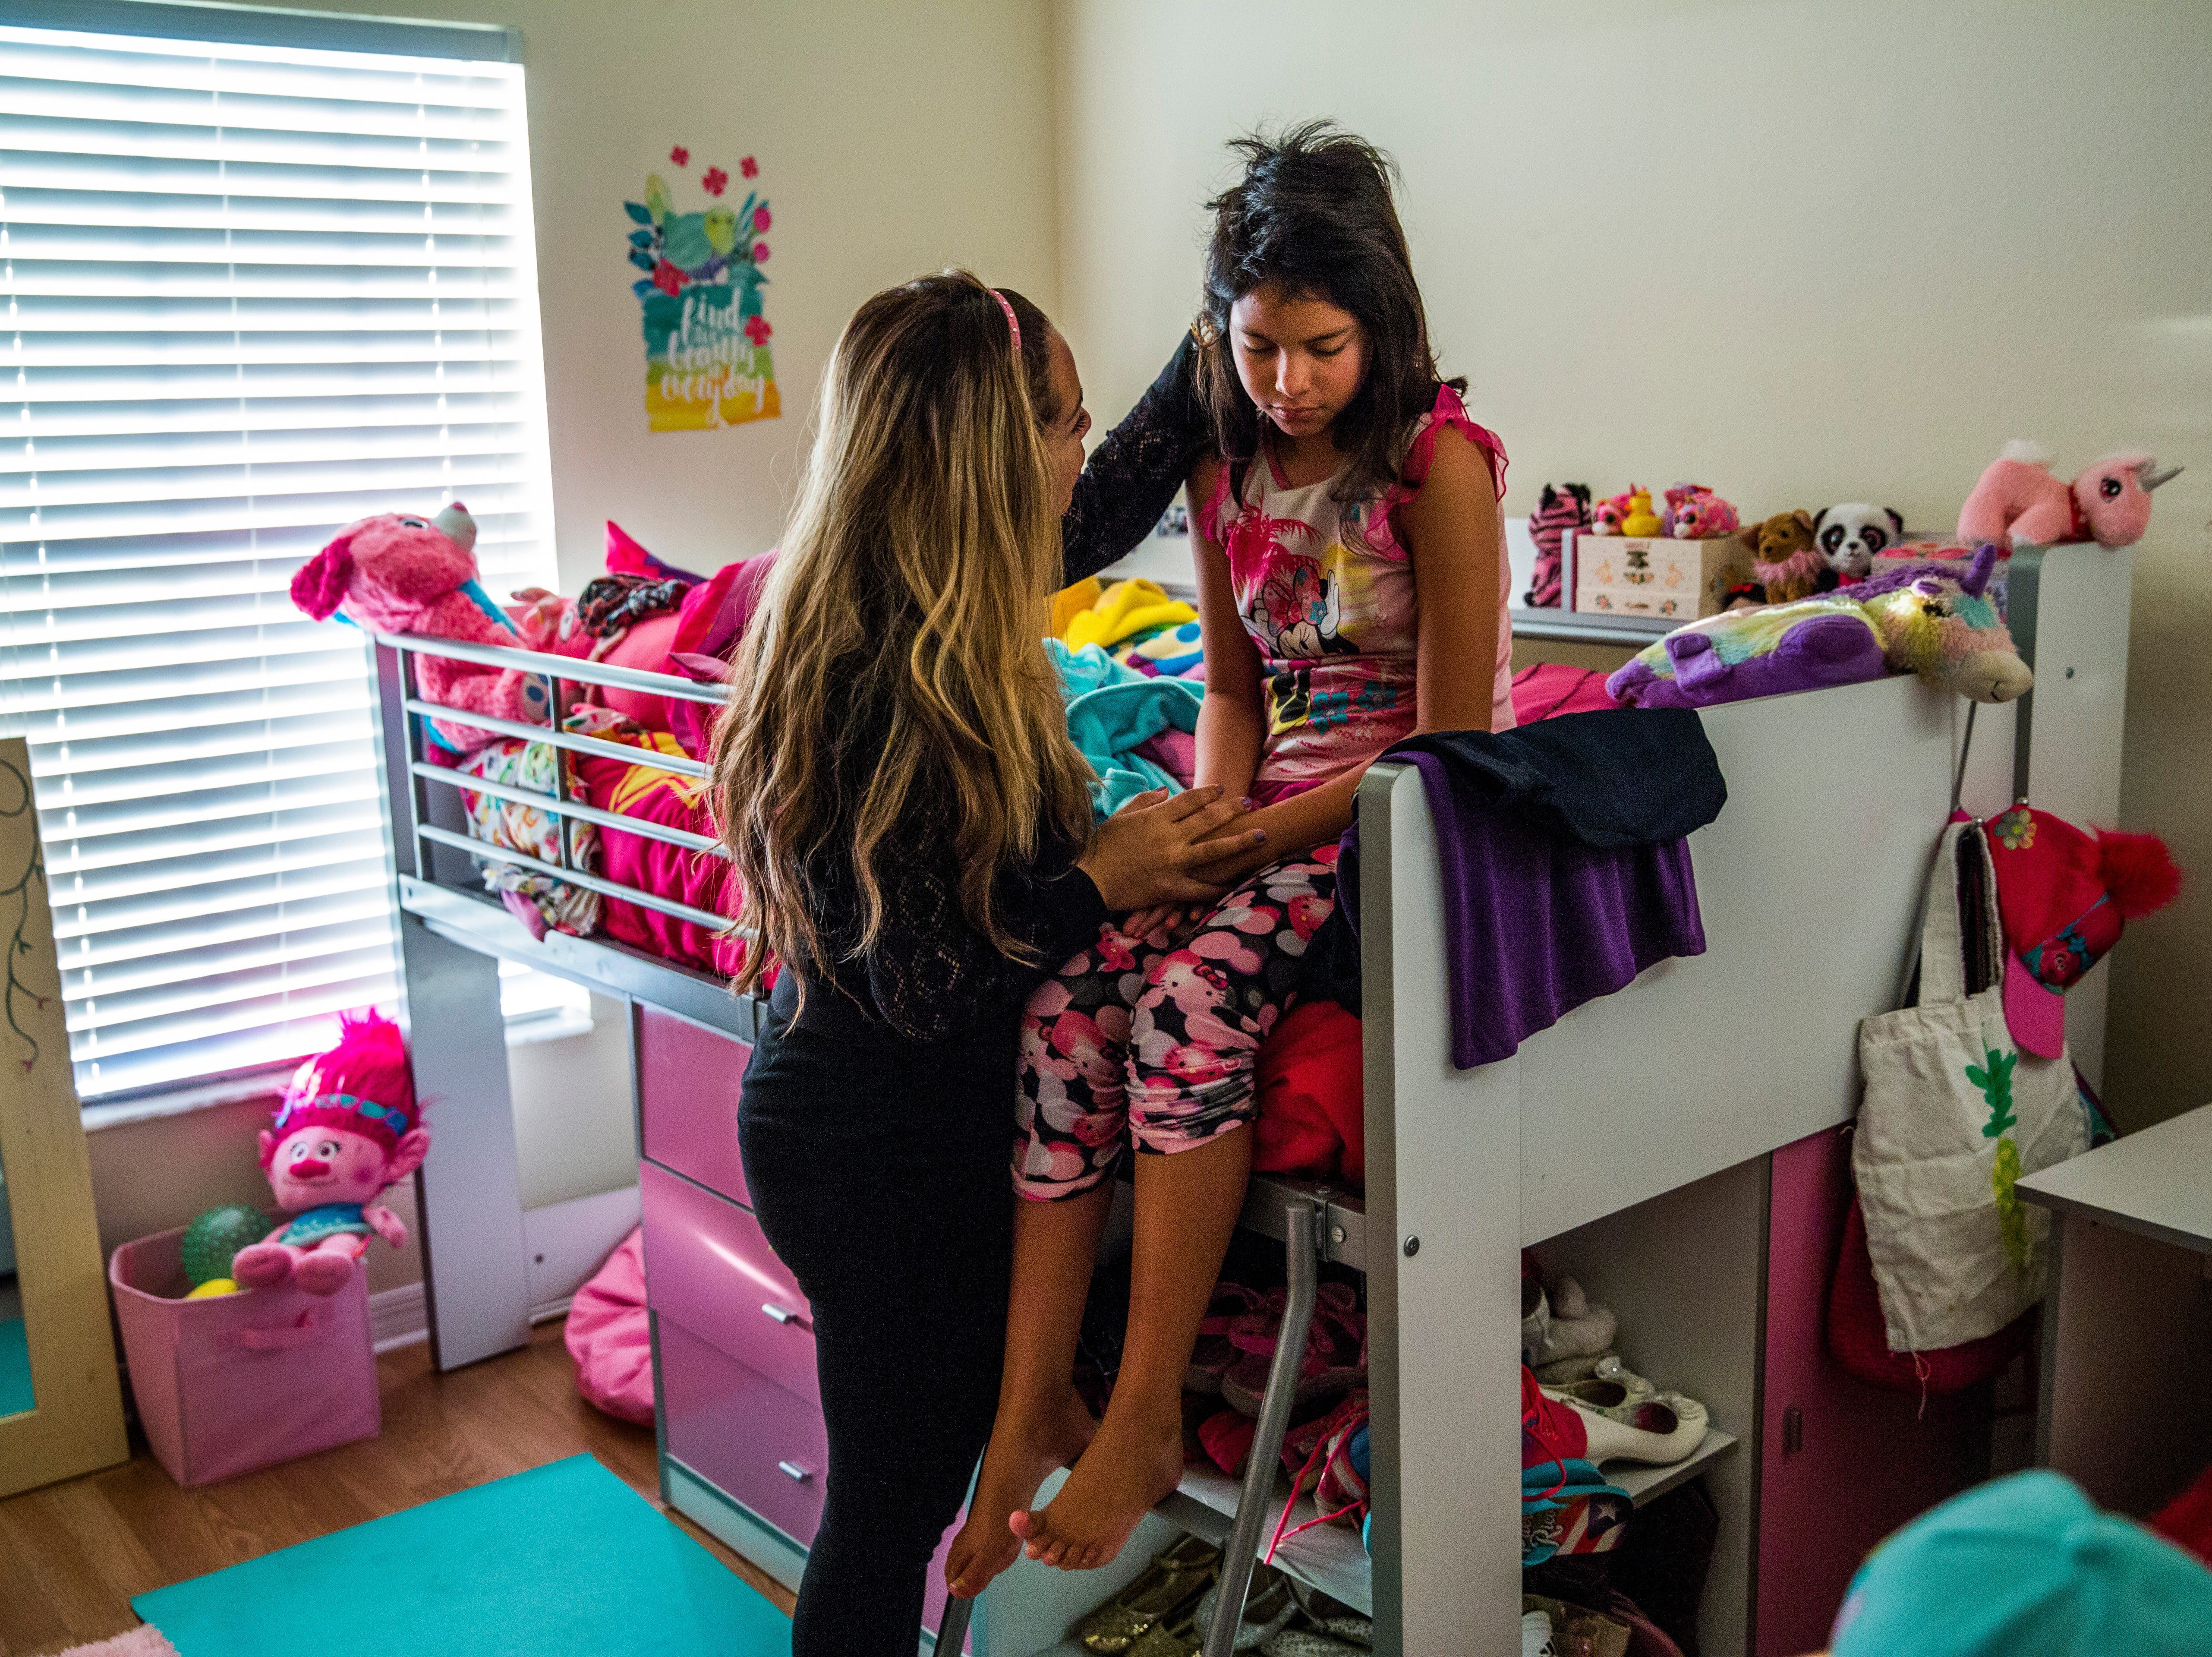 Marcela Guimoye wakes up her daughter Camila Chang, 11, for school in their North Naples home on Thursday, Aug. 16, 2018.